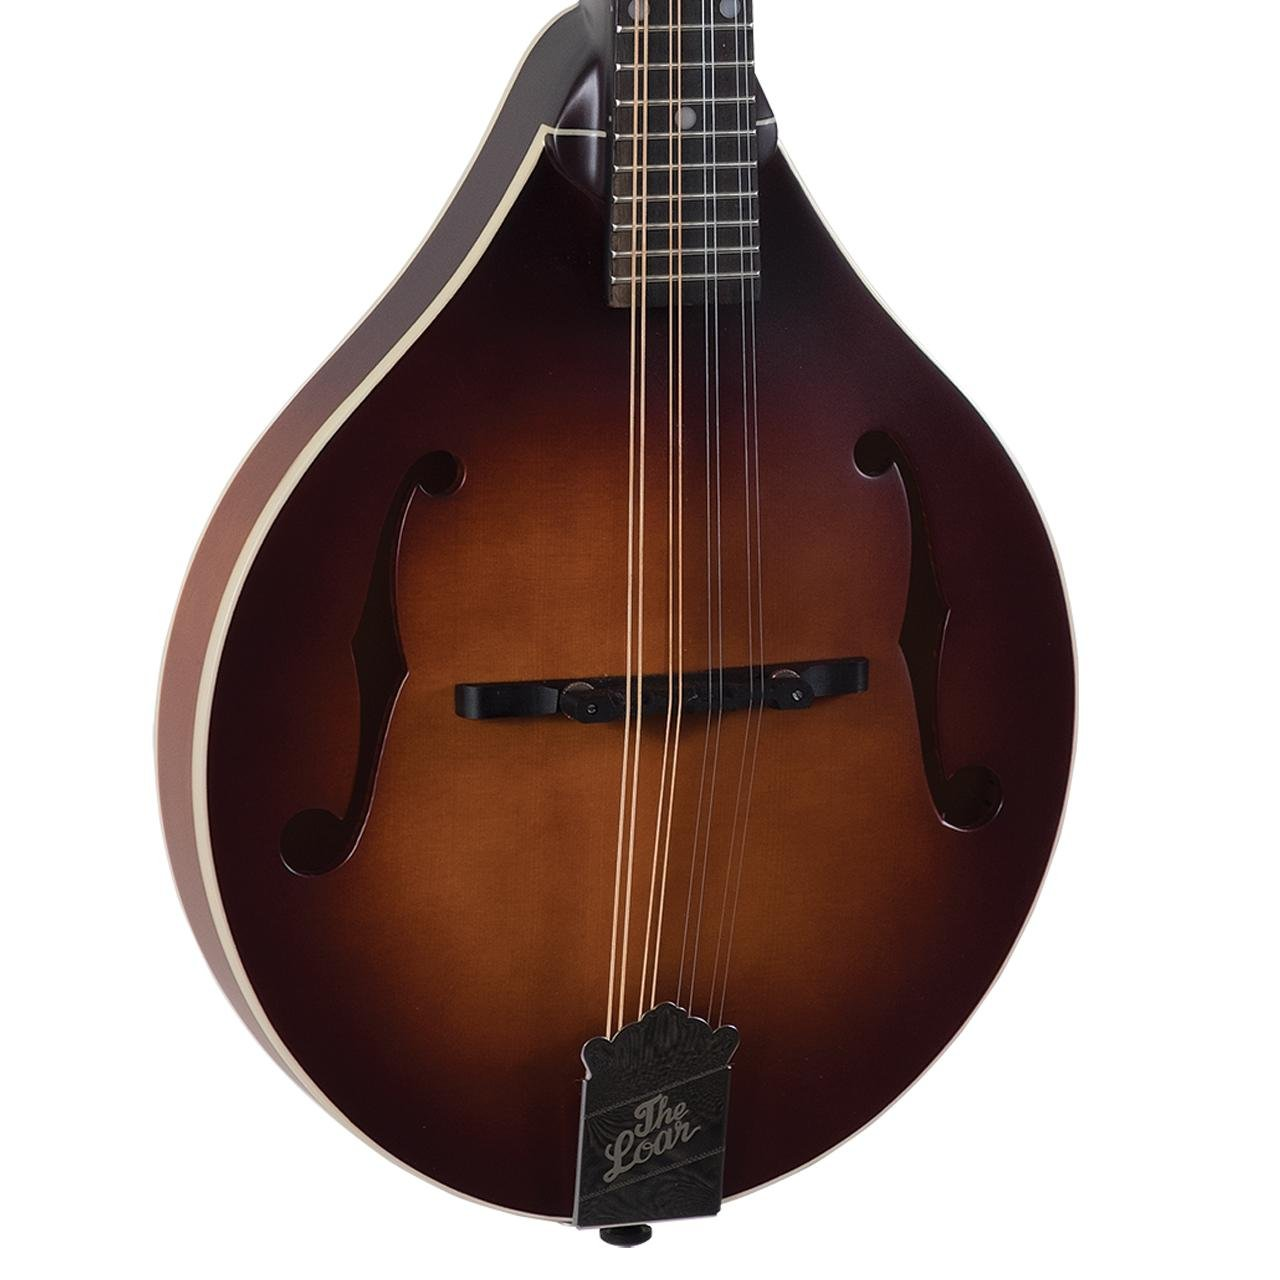 The Loar Honey Creek A-Style Mandolin